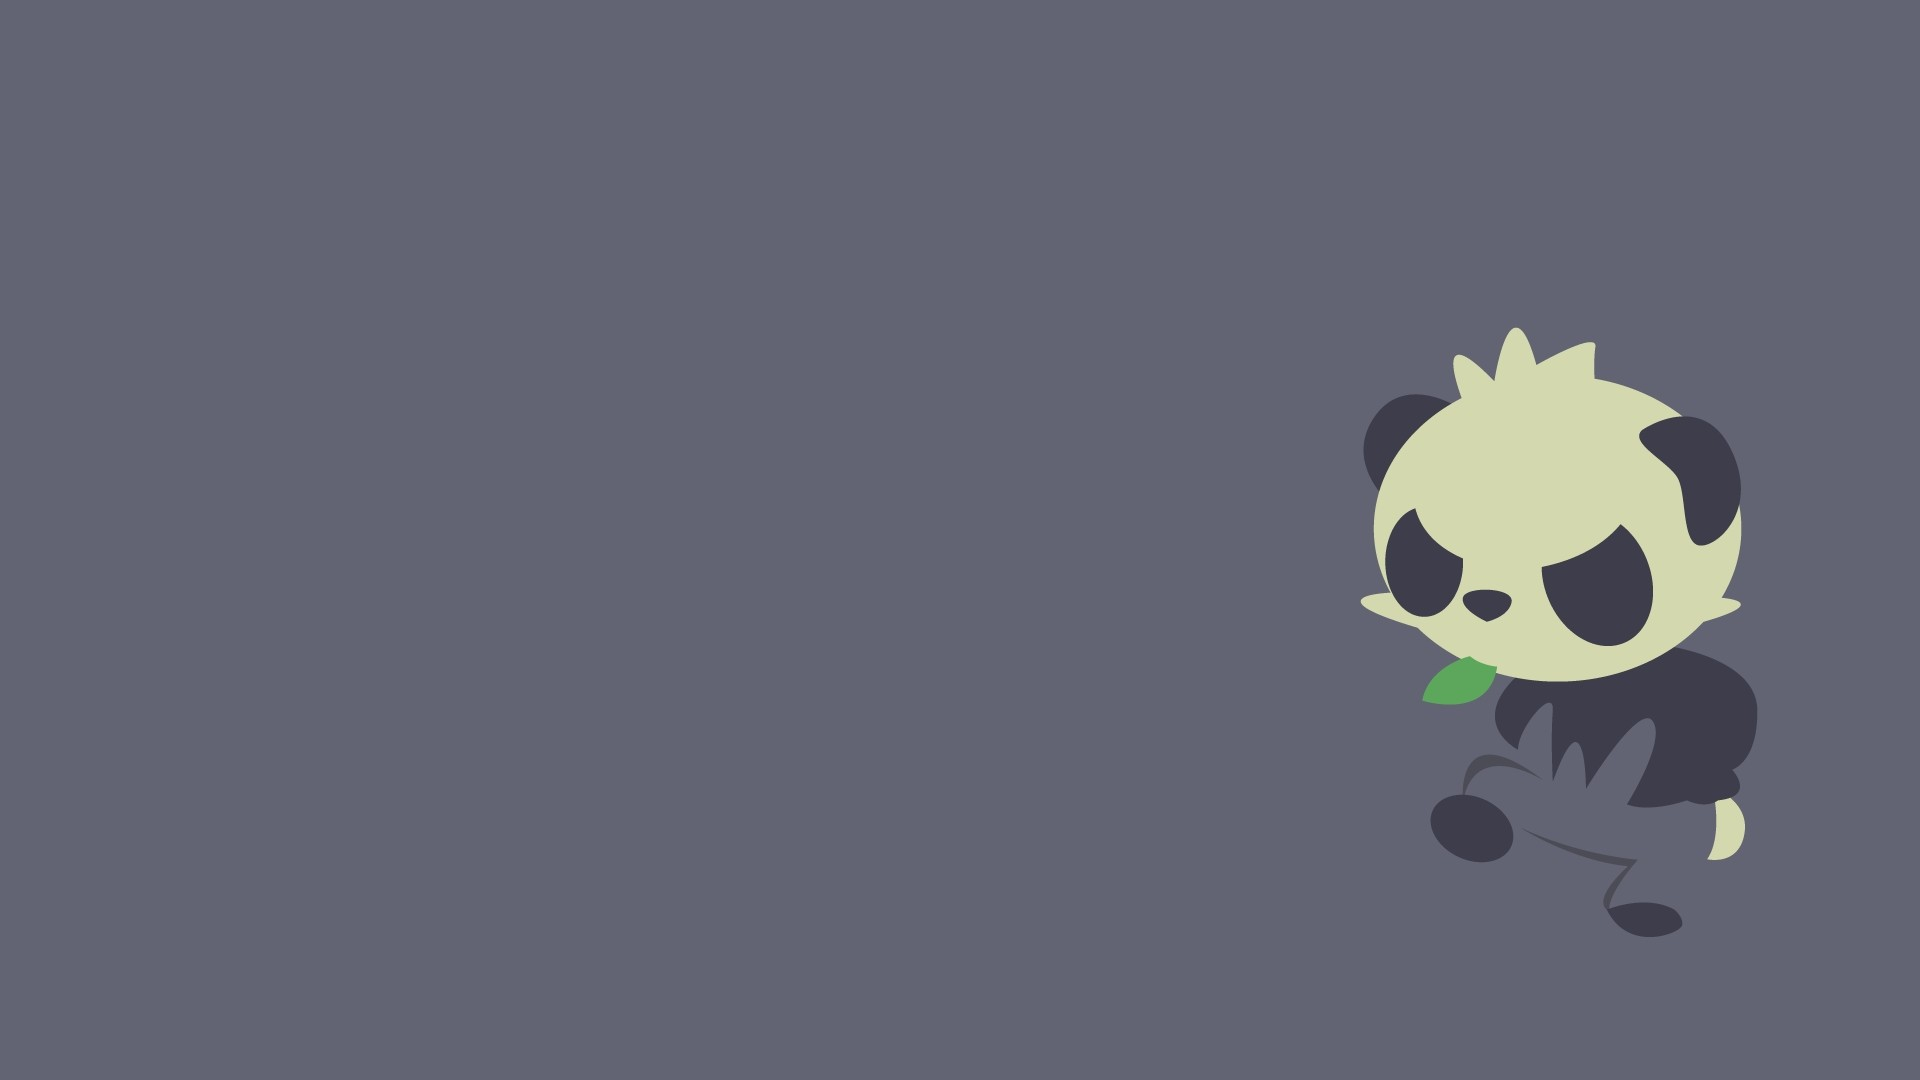 Panda Minimalist wallpaper for computer